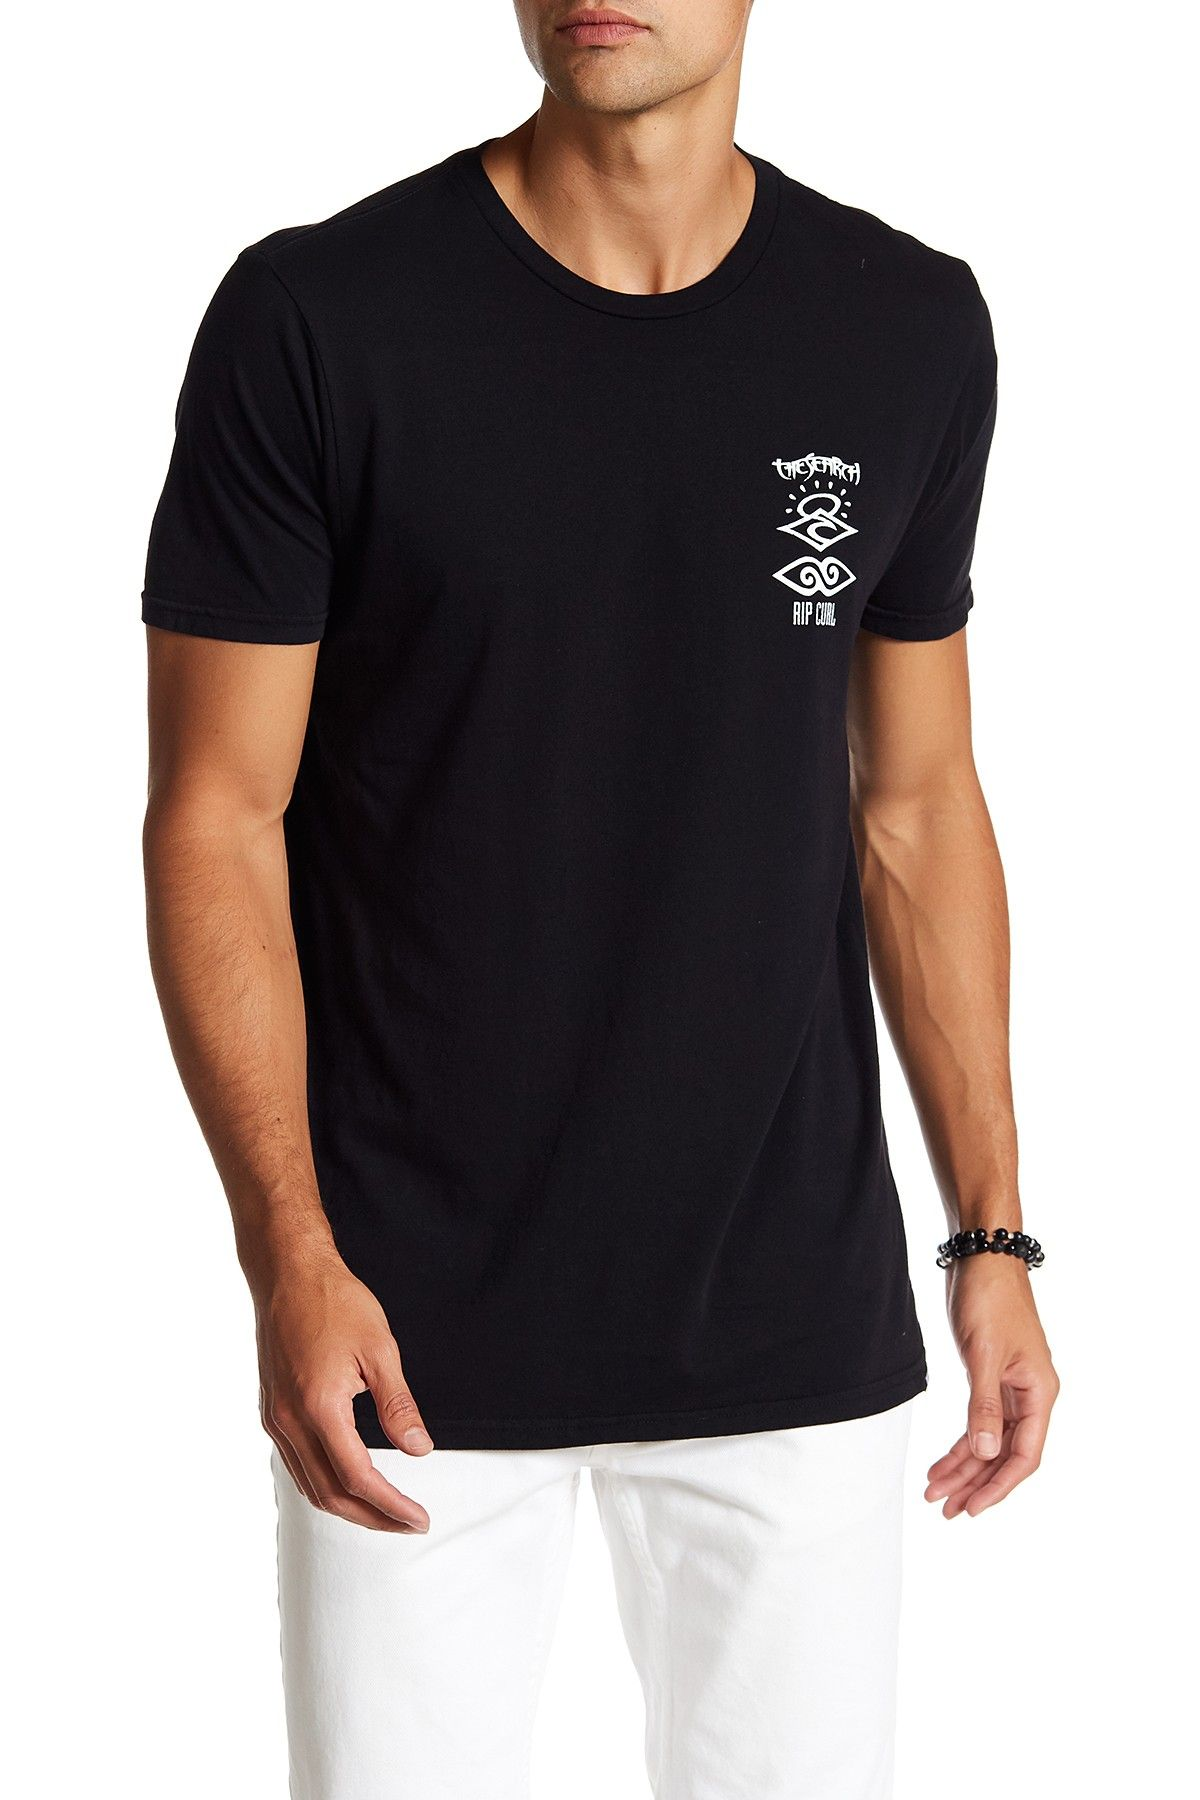 The Early Search Heritage Tee